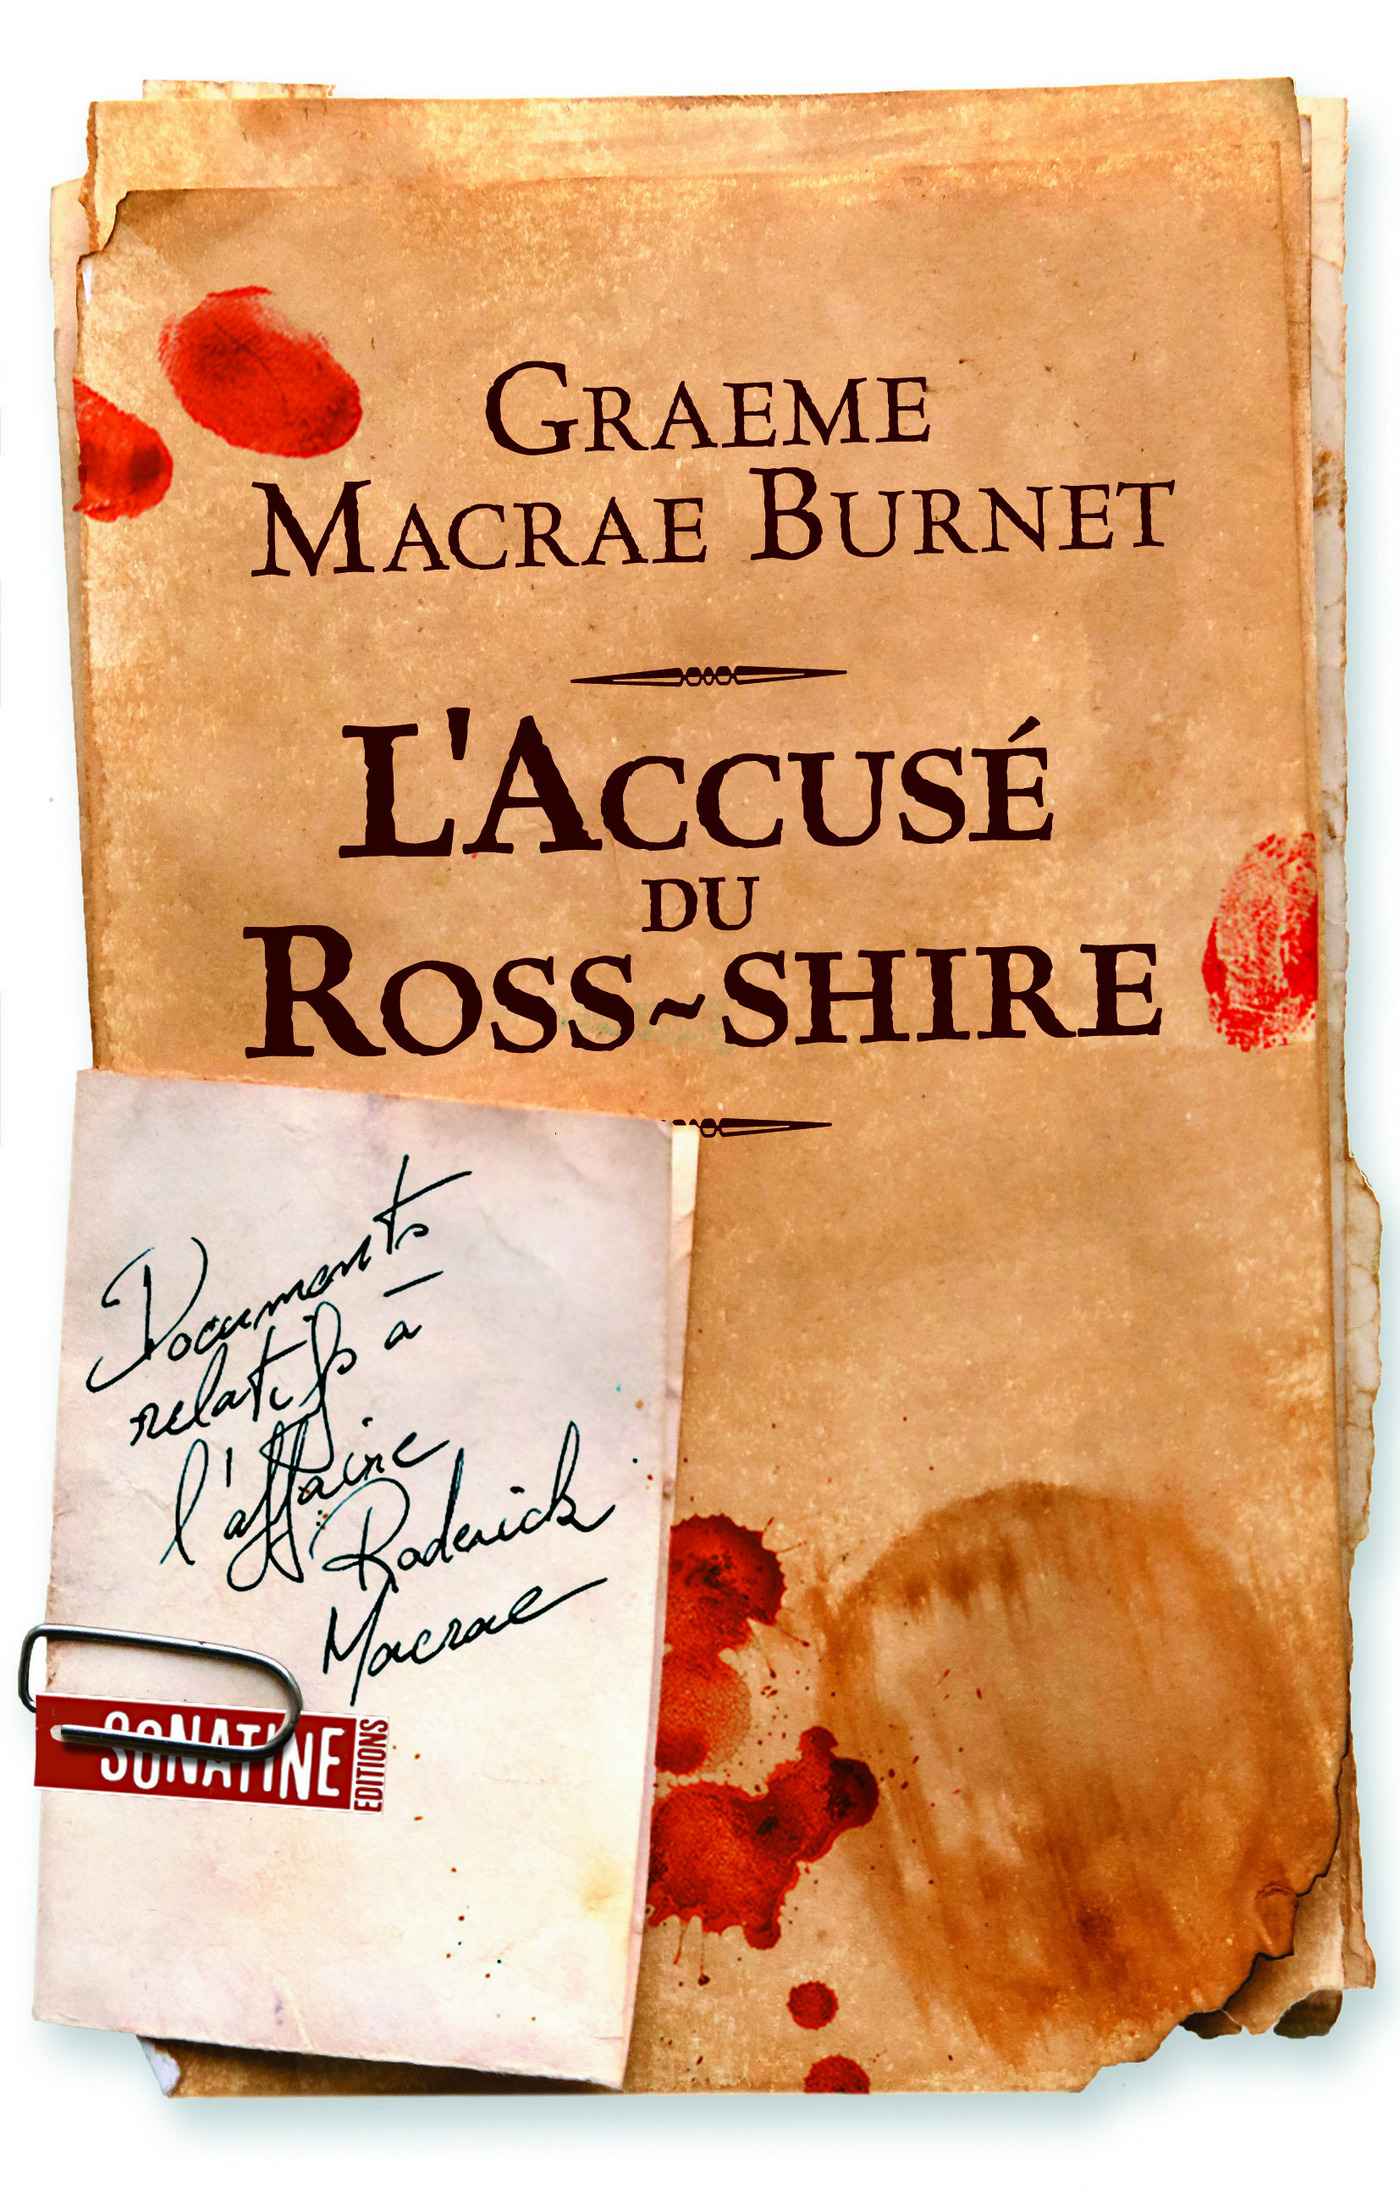 L'Accus? du Ross-shire, Documents relatifs ? l'affaire Roderick Macrae